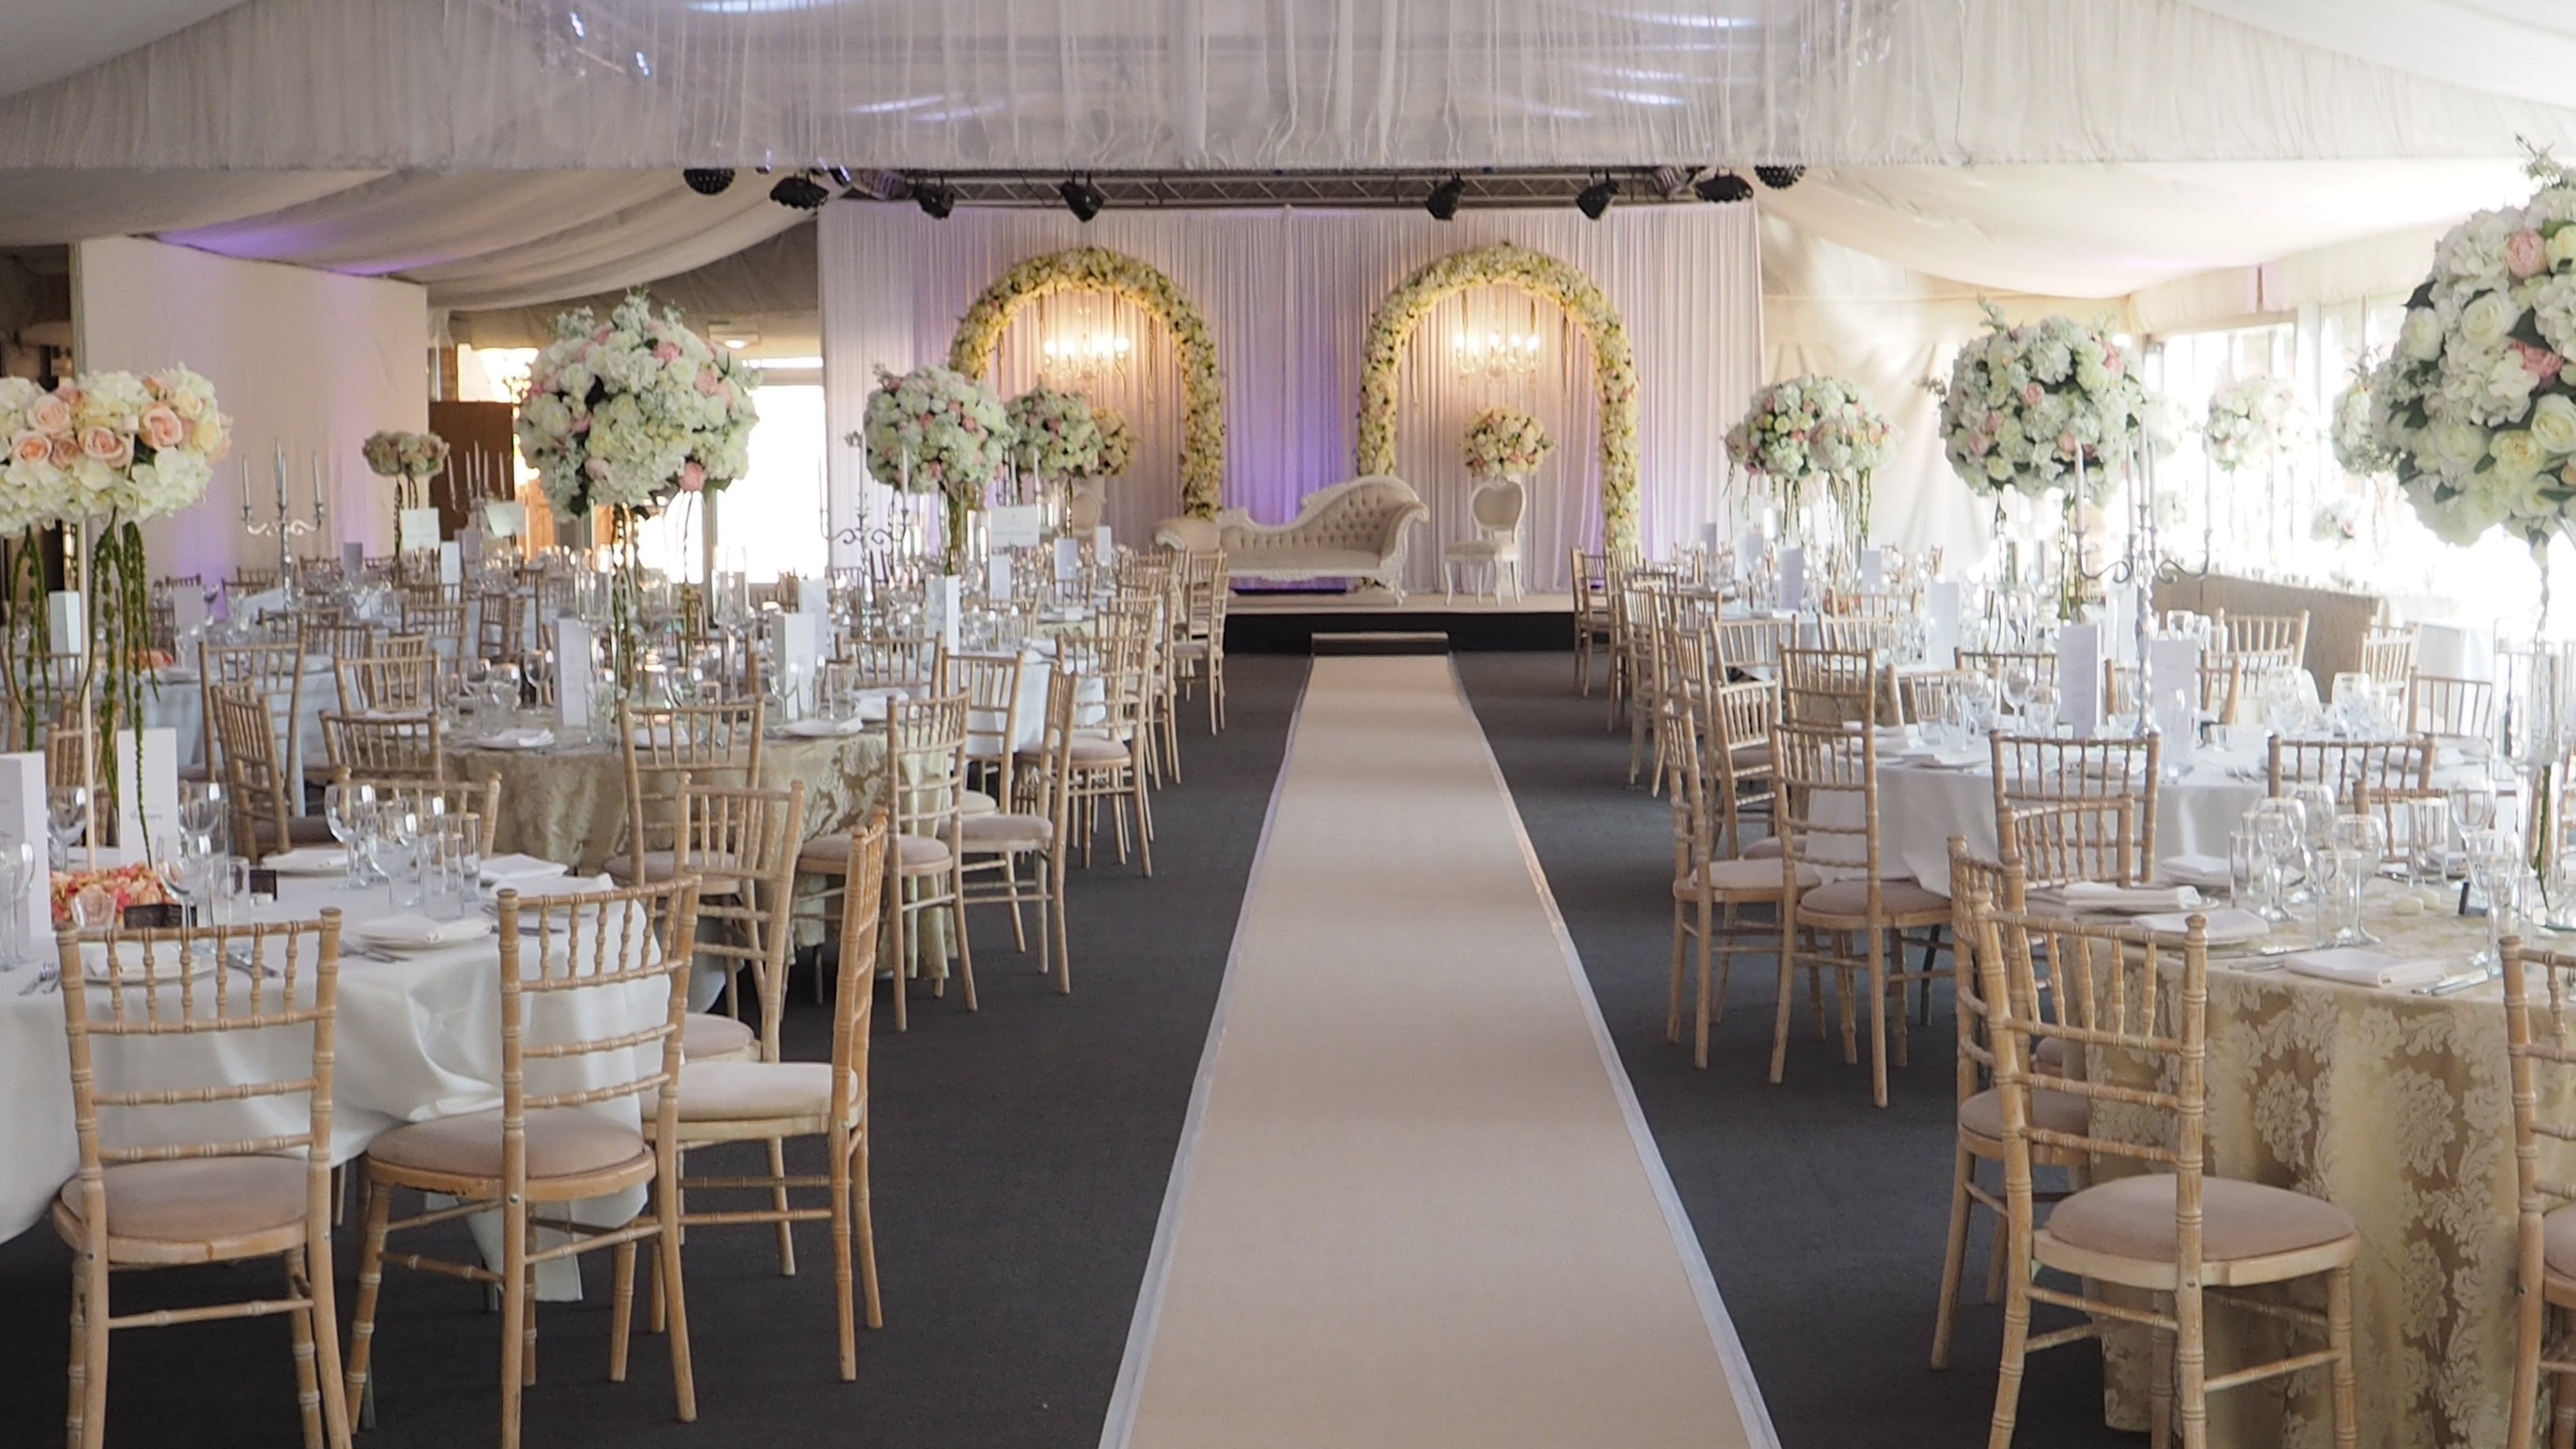 Free stock photo of beautiful event, event, events, events venue